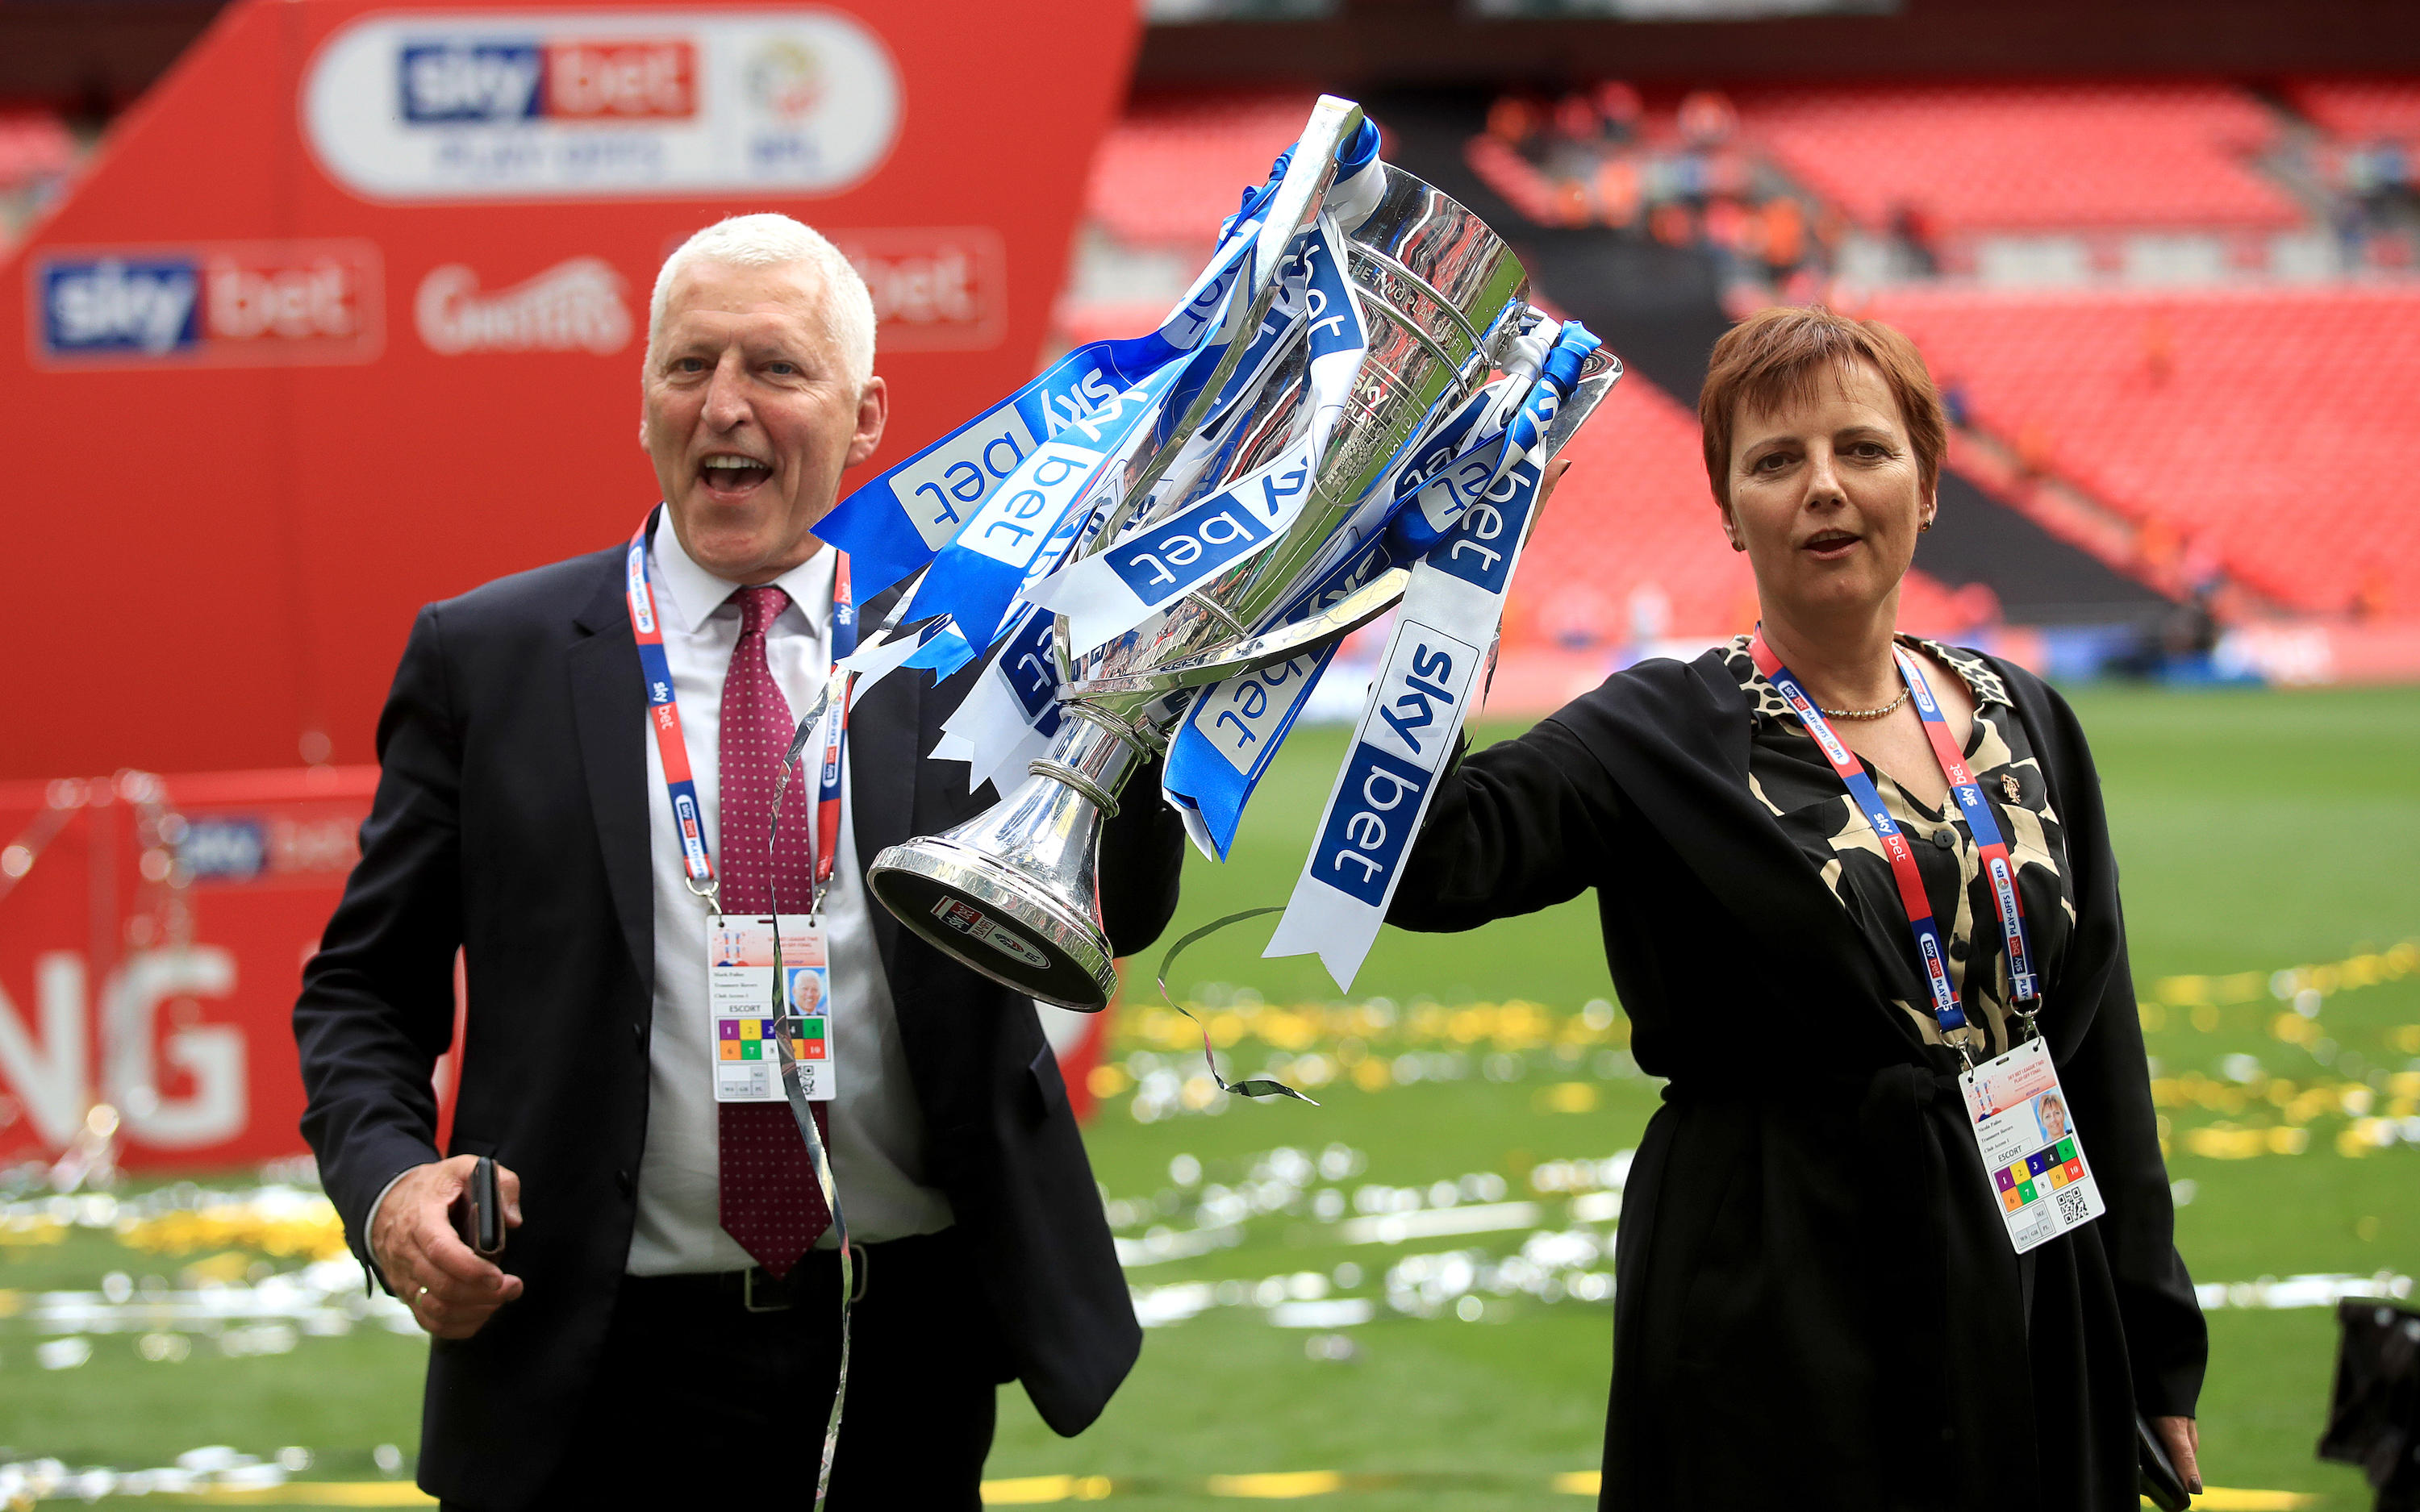 Tranmere Rovers v Newport County - Sky Bet League Two Play-off - Final - Wembley Stadium